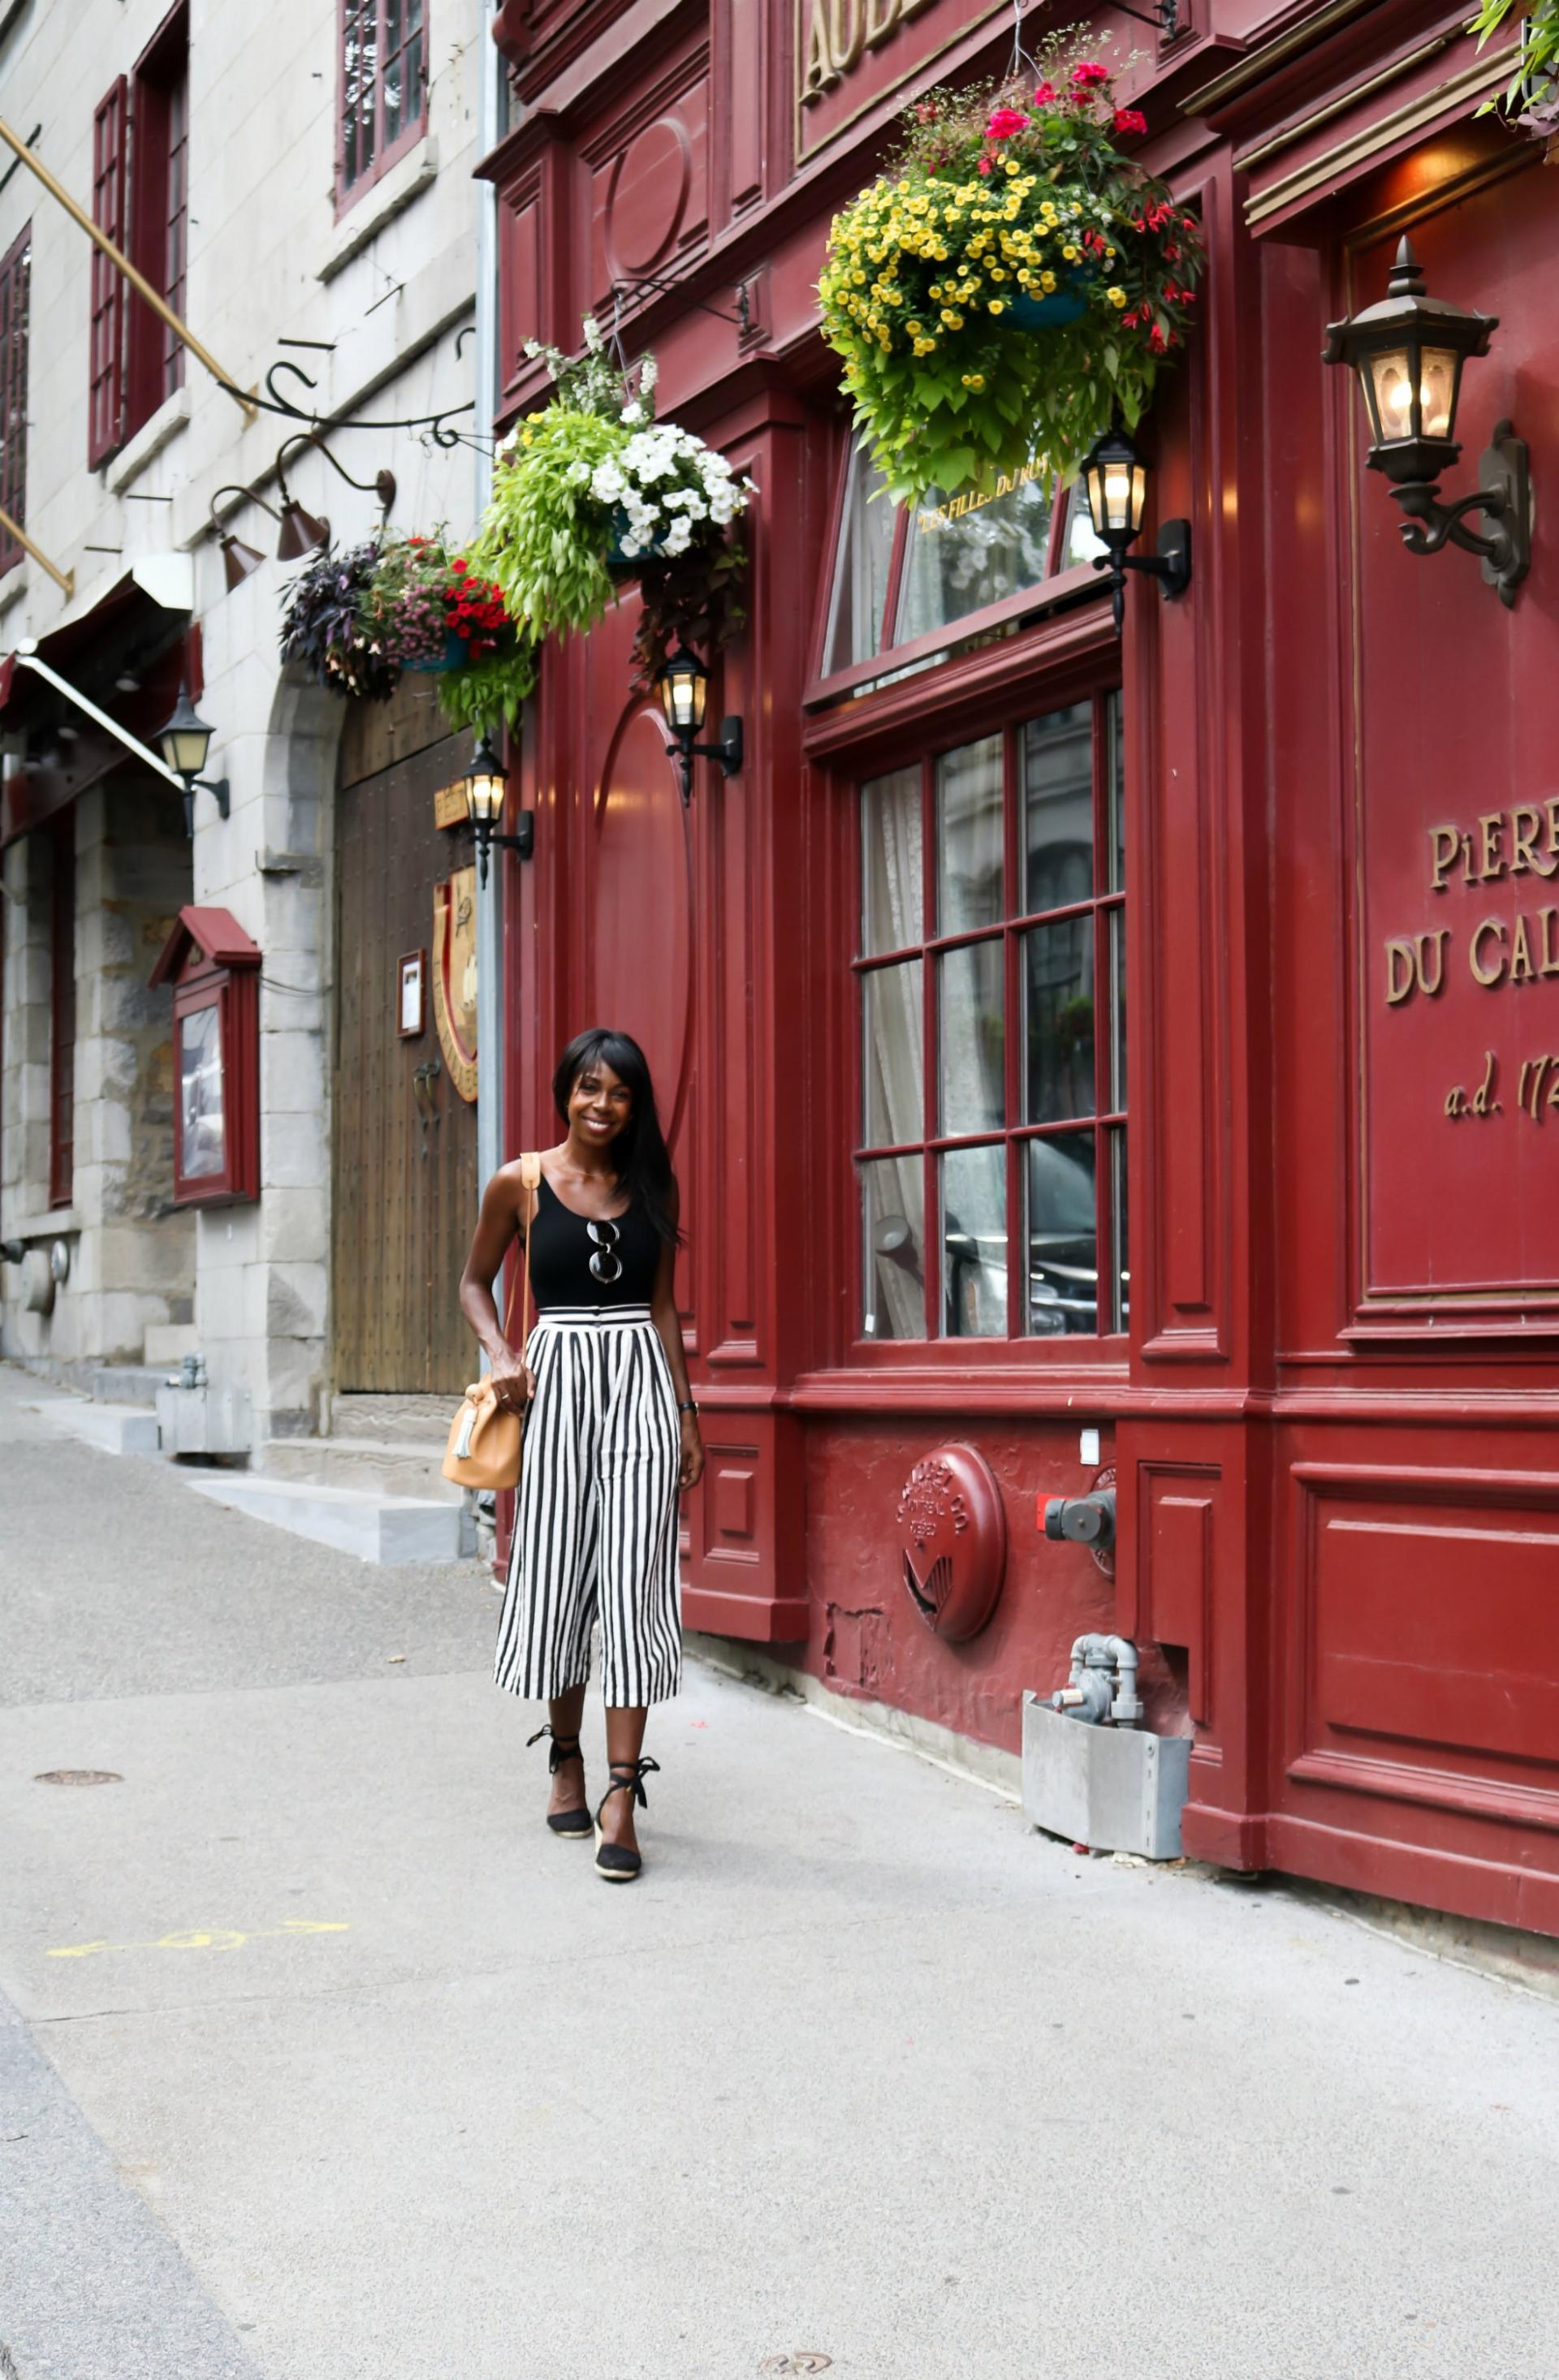 My travel guide to beautiful Montreal - a little slice of Paris in Canada!